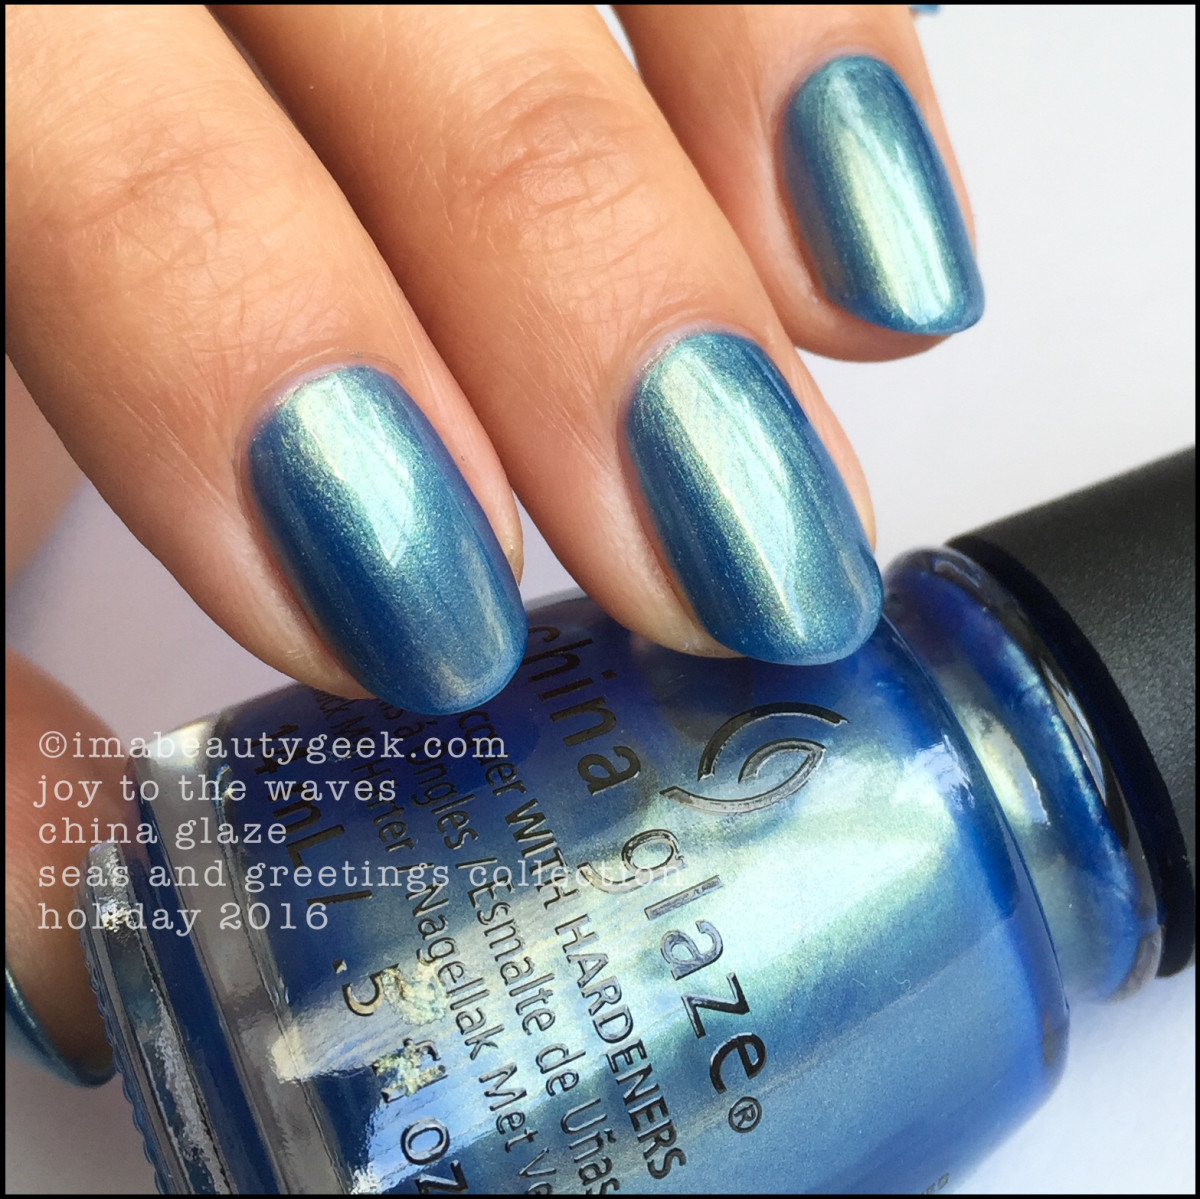 China glaze seas and greetings holiday 2016 collection swatches and china glaze joy to the waves m4hsunfo